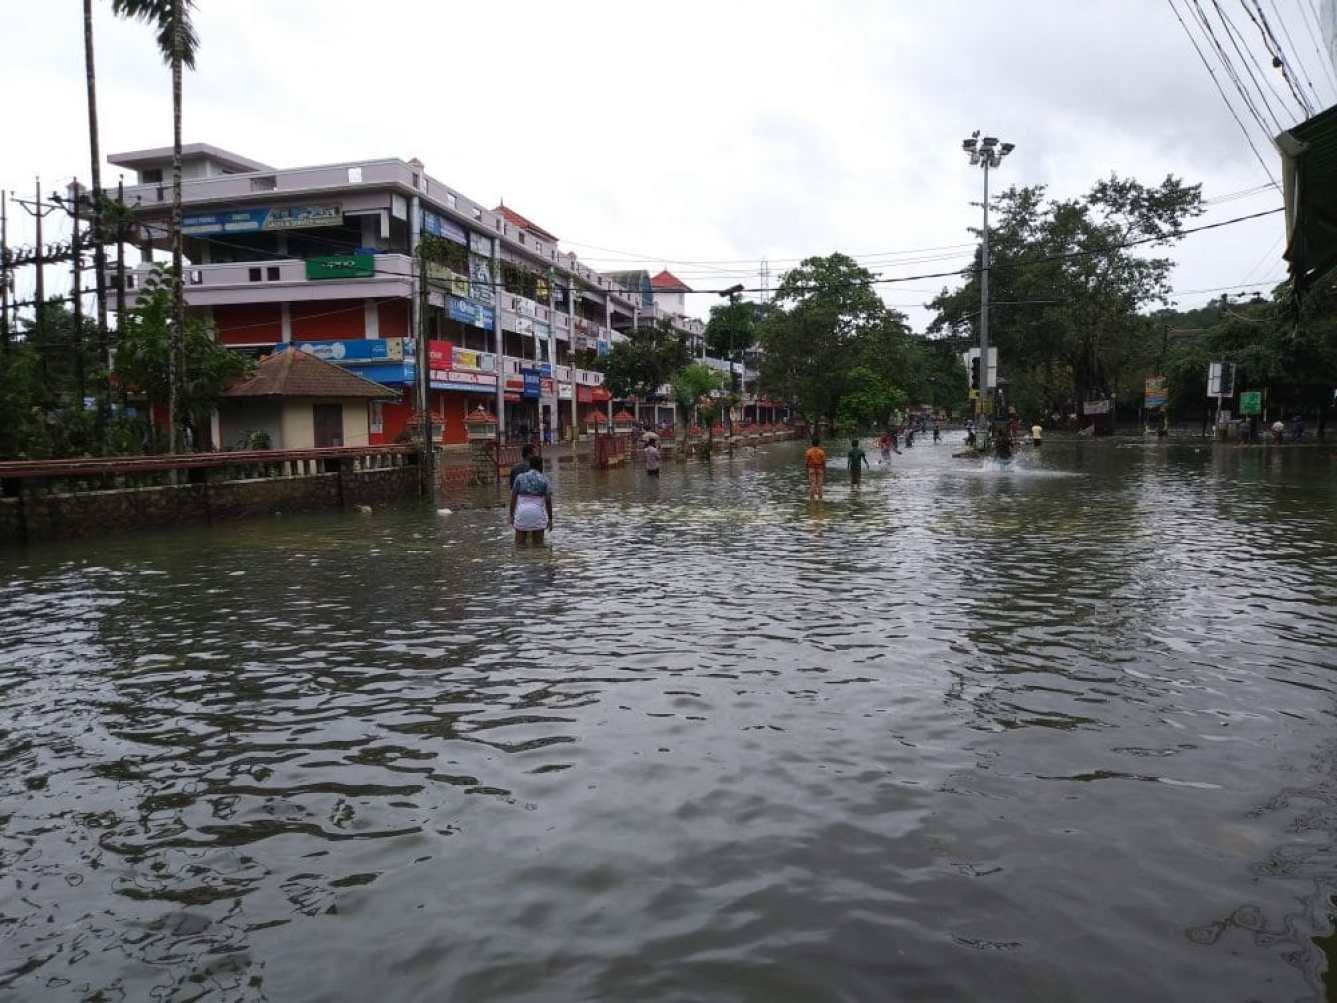 <em><strong>A stretch of road submerged by floodwaters in the town of Pala during last year's flooding in Kerala. Image credit: Praveenp [CC BY-SA 4.0 (https://creativecommons.org/licenses/by-sa/4.0)], from Wikimedia Commons</strong></em>